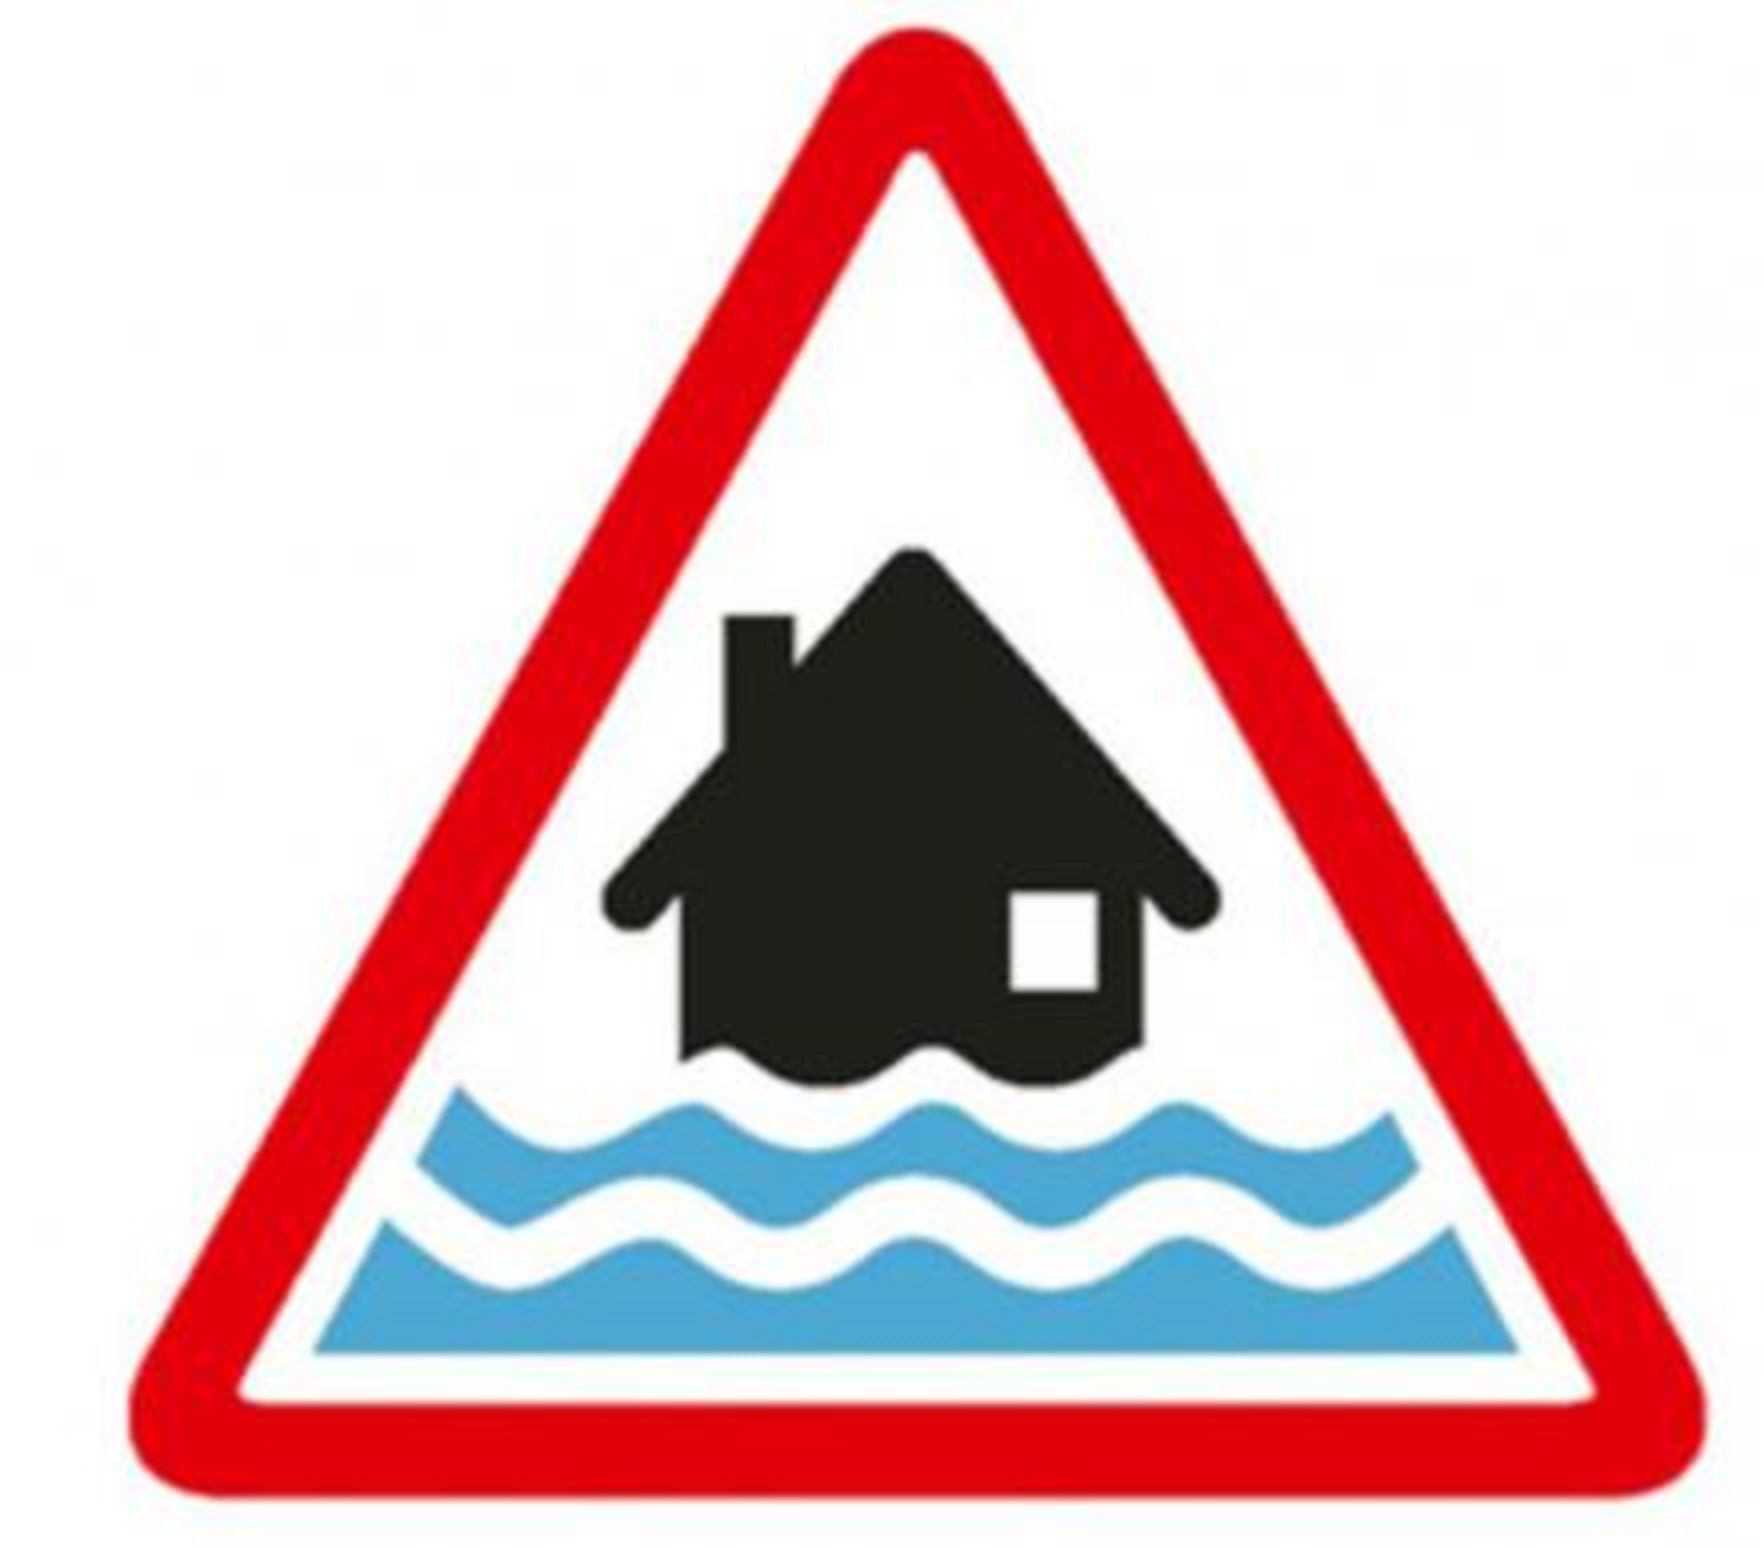 Update: Flood warning issued in West Oxfordshire and sandbags available in Oxford